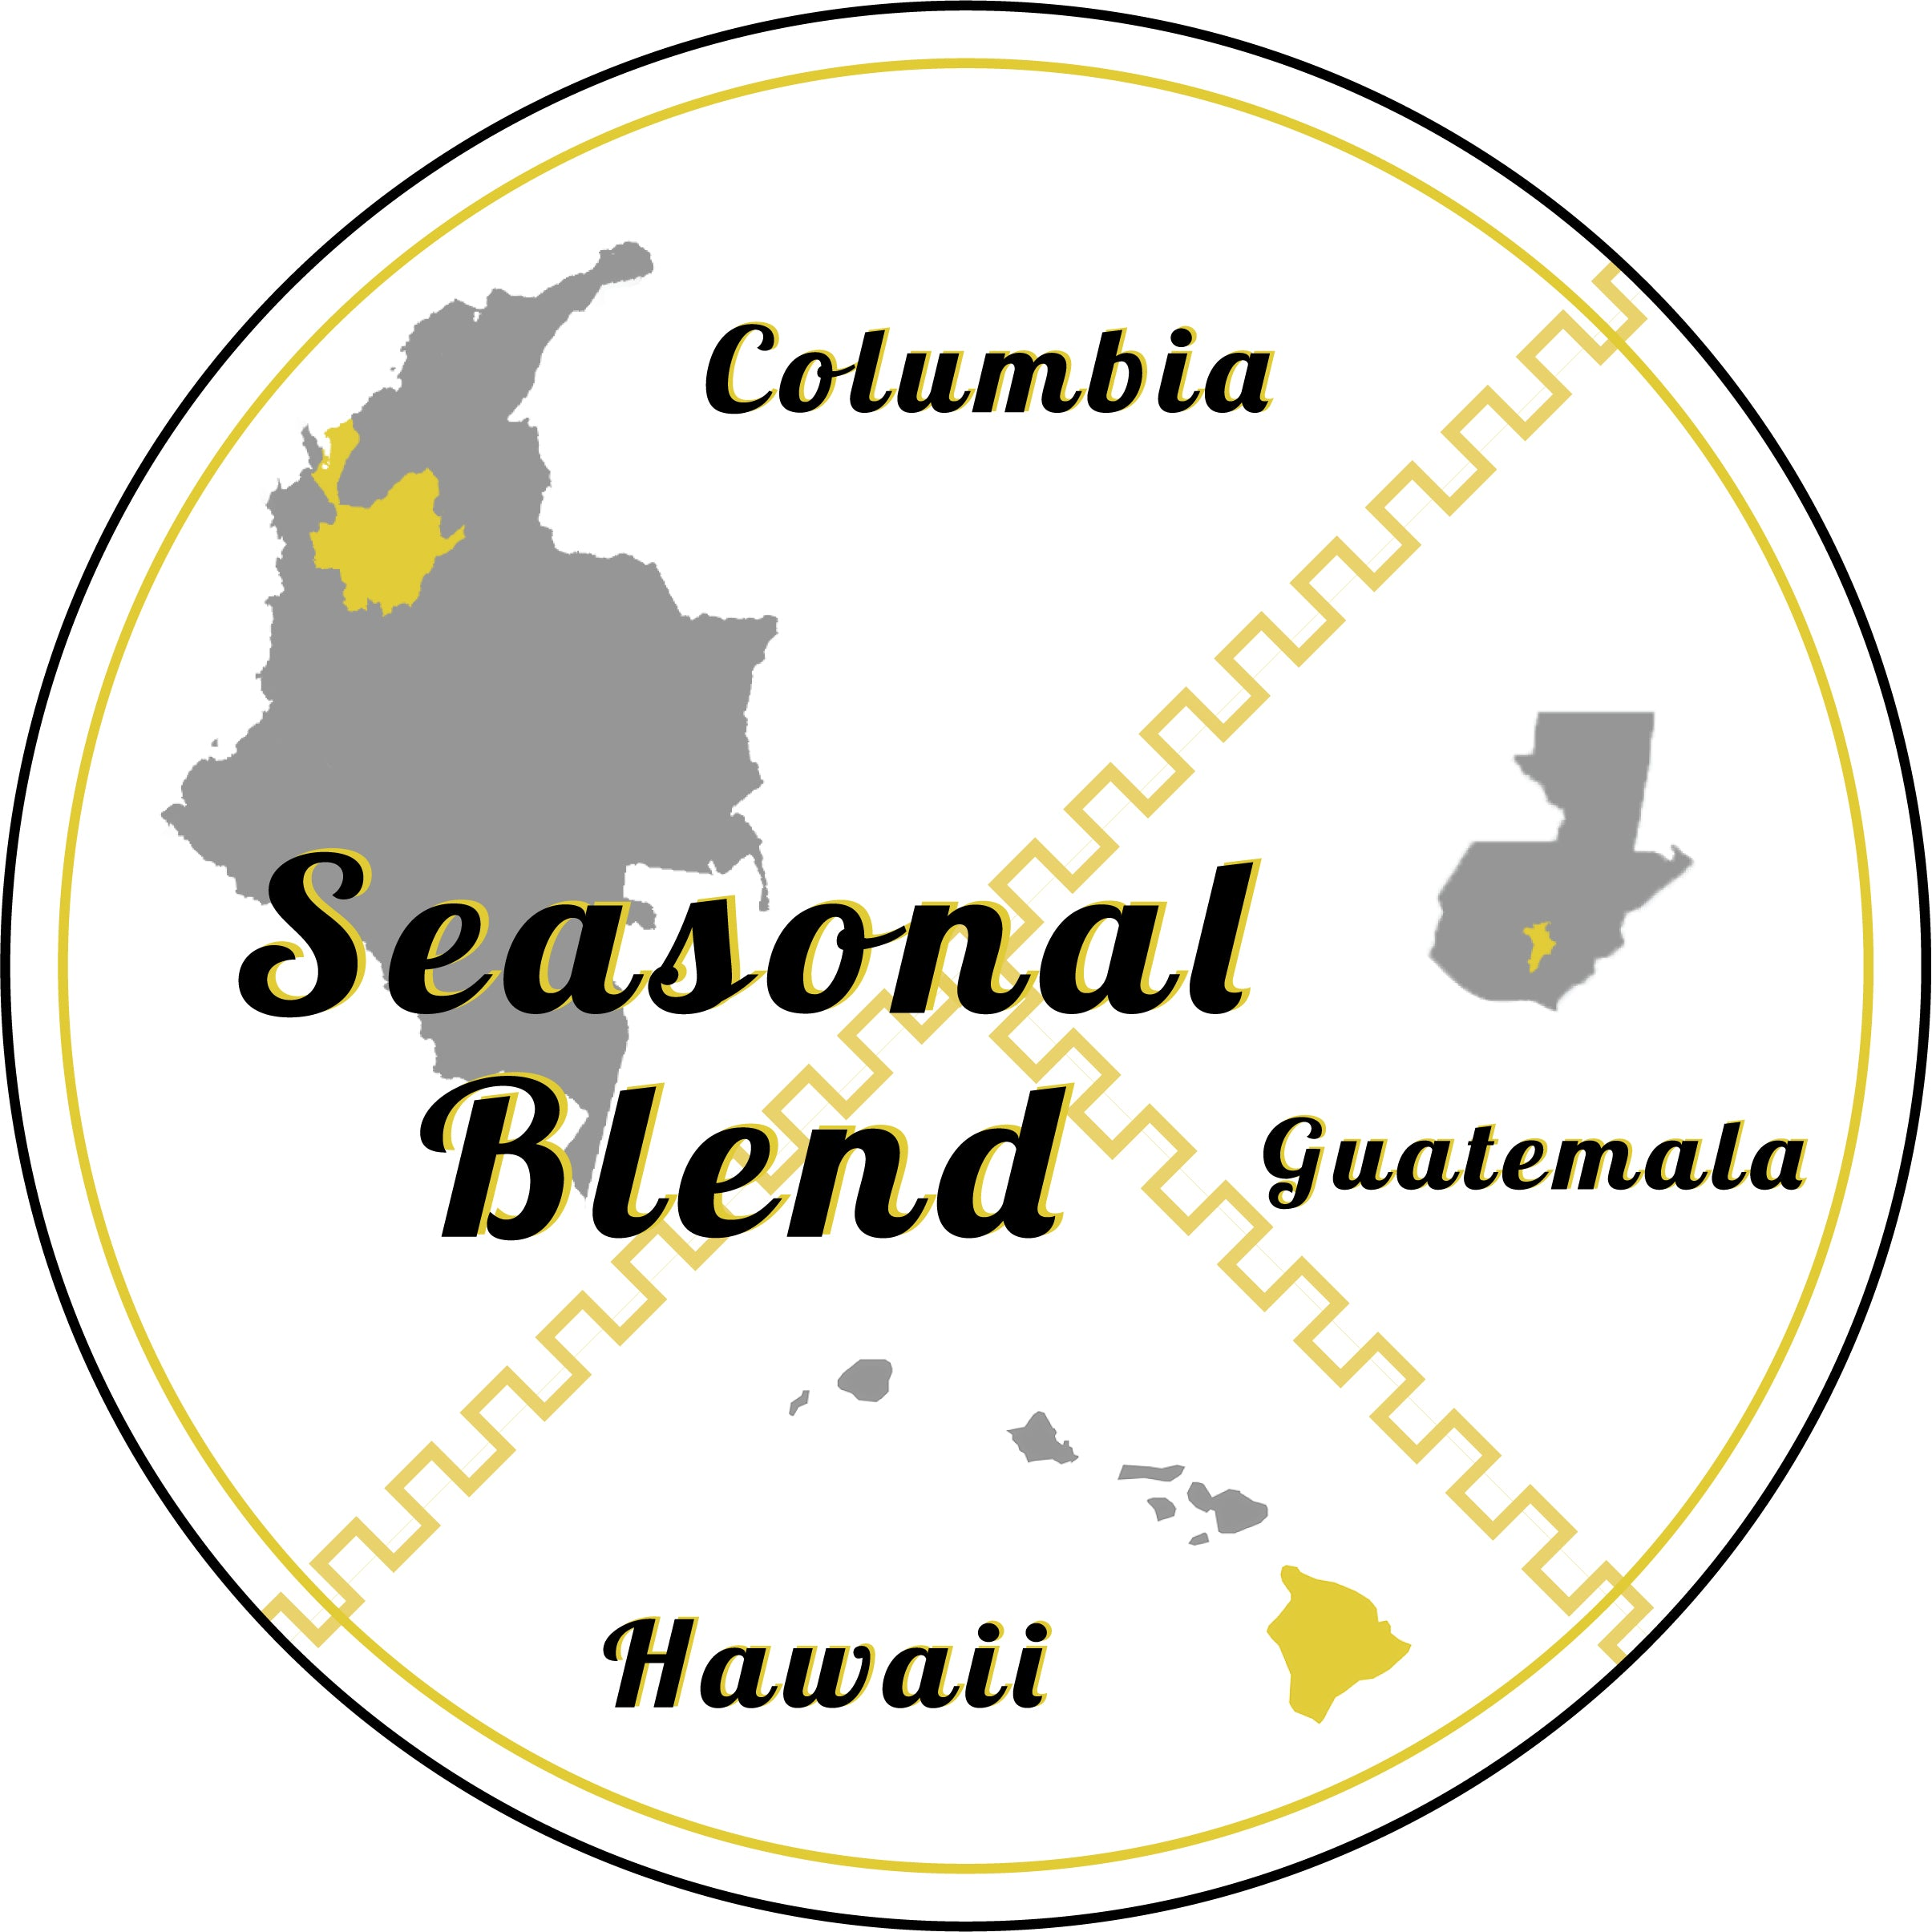 Goldilocks Seasonal Blend: Ethiopian, Guatemalan, and Kona